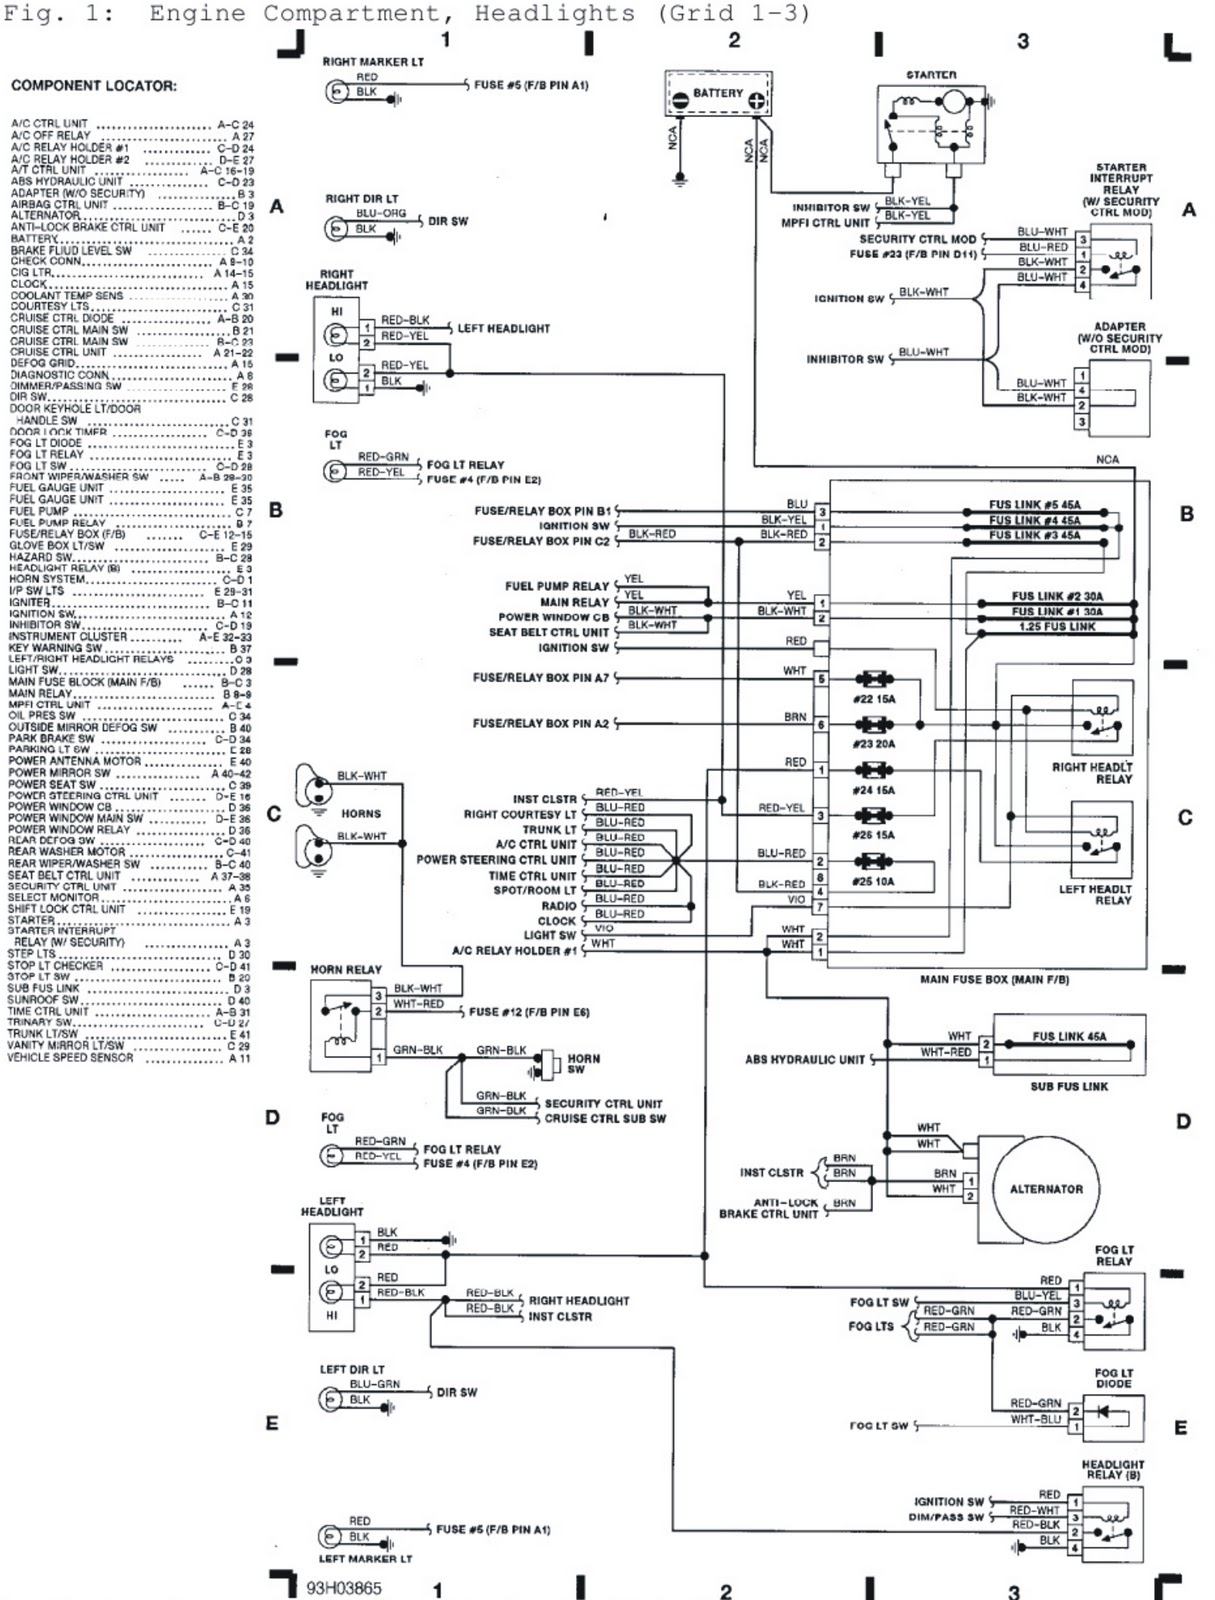 Subaru Engine Compartment Wiring Diagram 1995 Schematic 2019 2004 Impreza Wrx 1992 Svx Headlights System